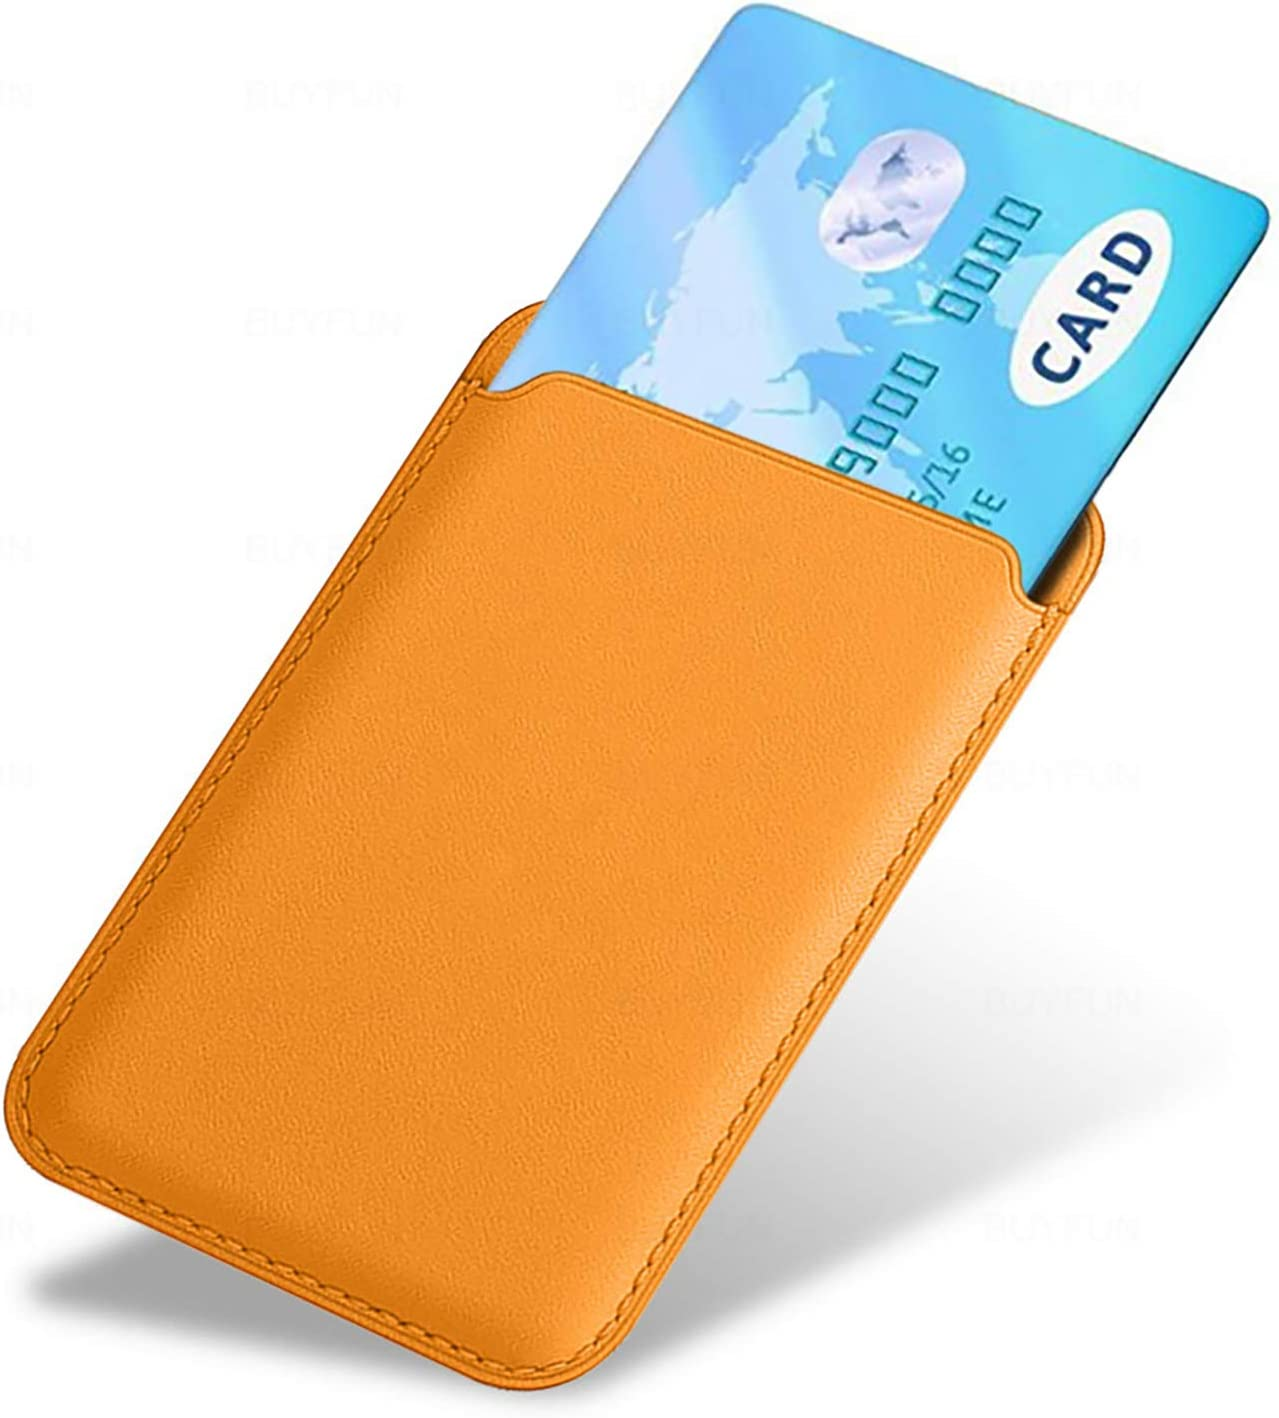 Magnetic magsafe Leather Wallet Pouch Card ID Holder Compatible for iPhone 12 Mini Baltic Blue iPhone 12 Pro Max iphone12 Pro